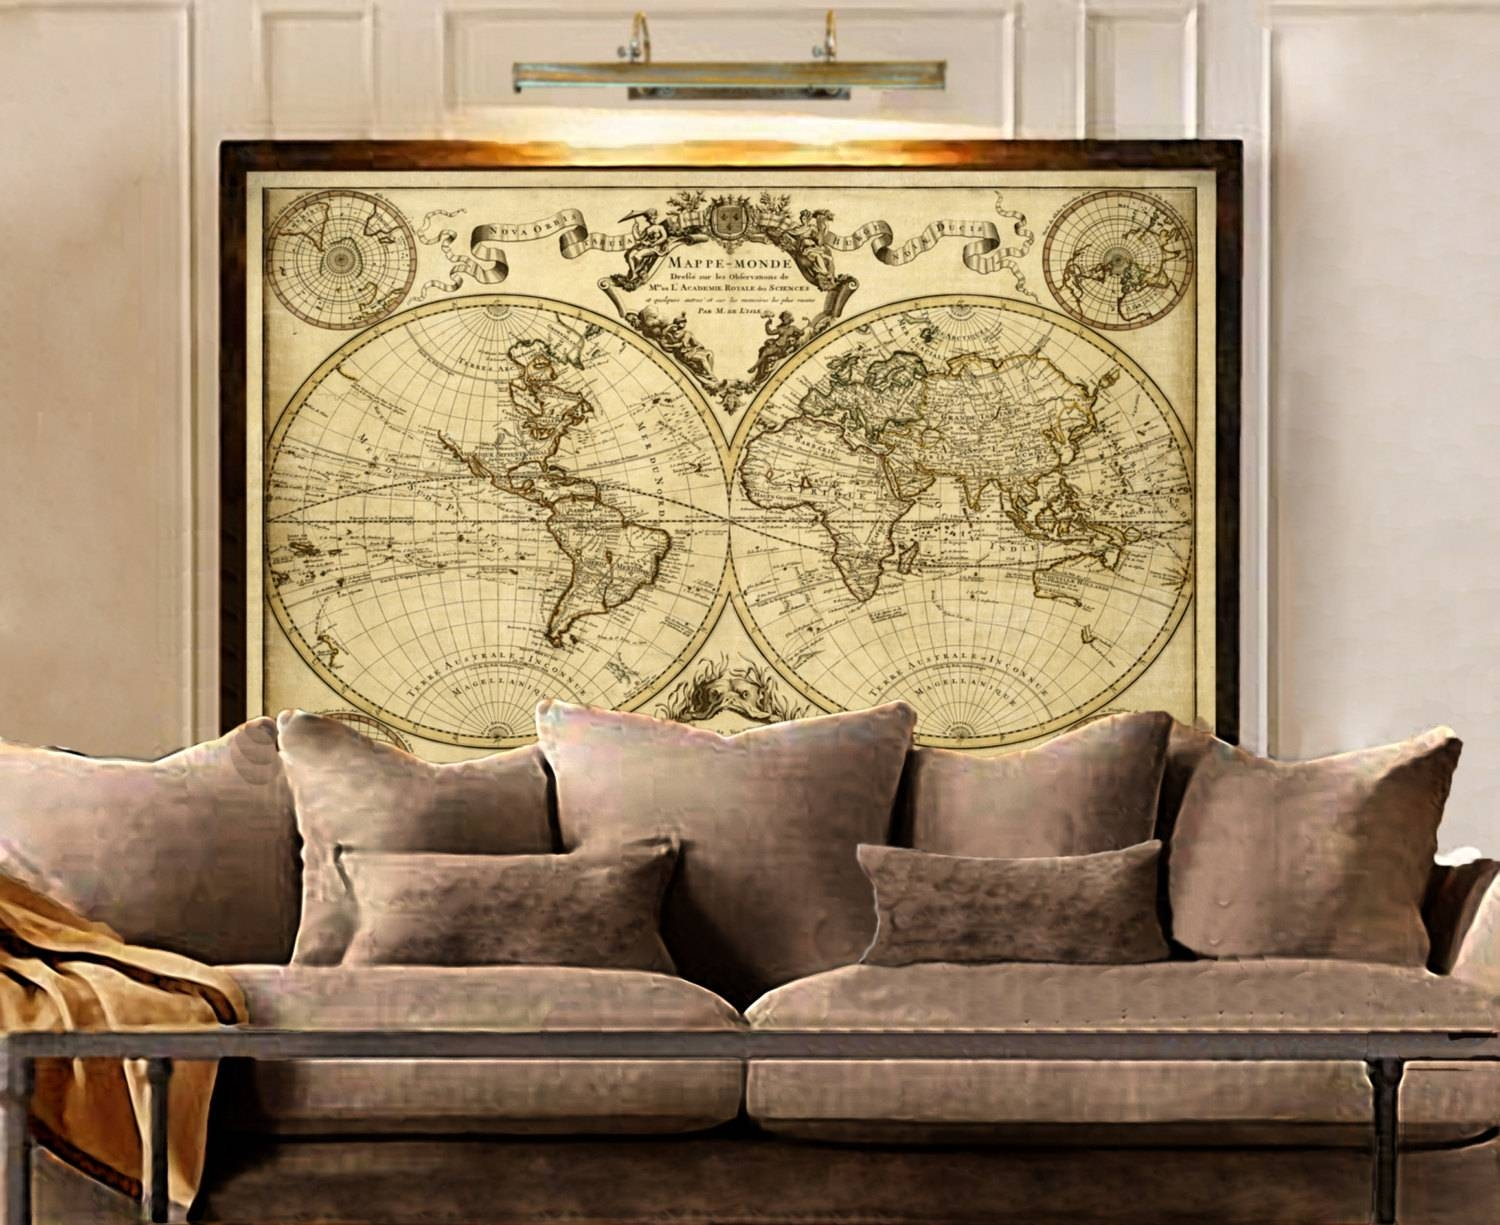 L'isle's 1720 Old World Map Historic Map Antique Style Regarding Most Up To Date Map Wall Art Maps (View 10 of 20)